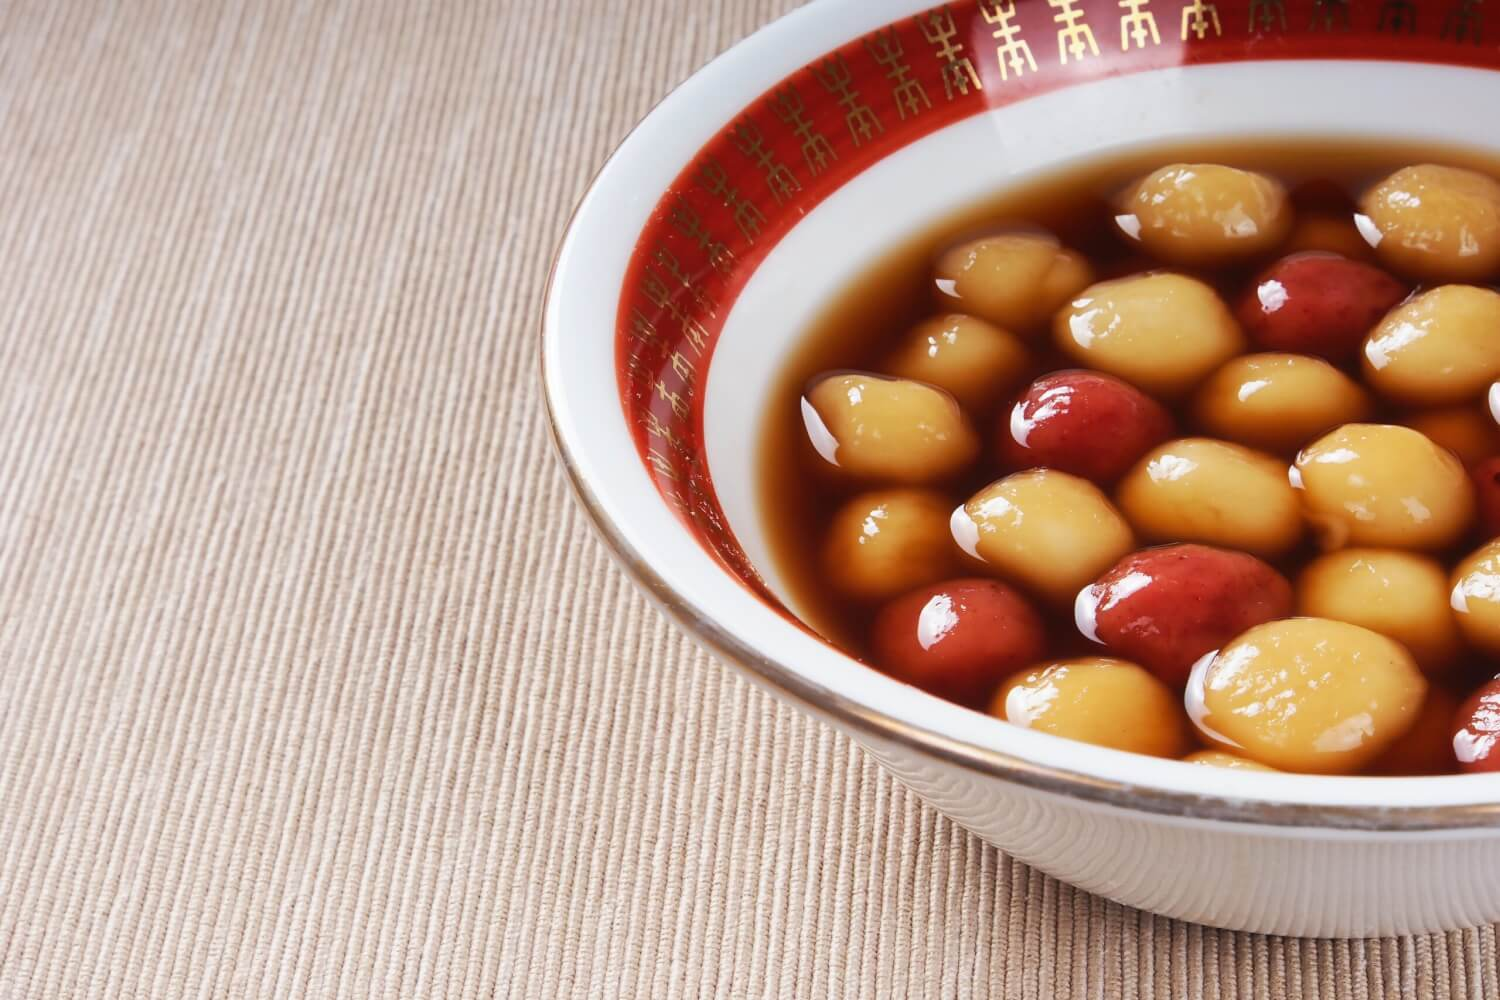 Tangyuan, tasty glutinous Chinese dessert balls that are commonly served in a sweet syrupy broth.